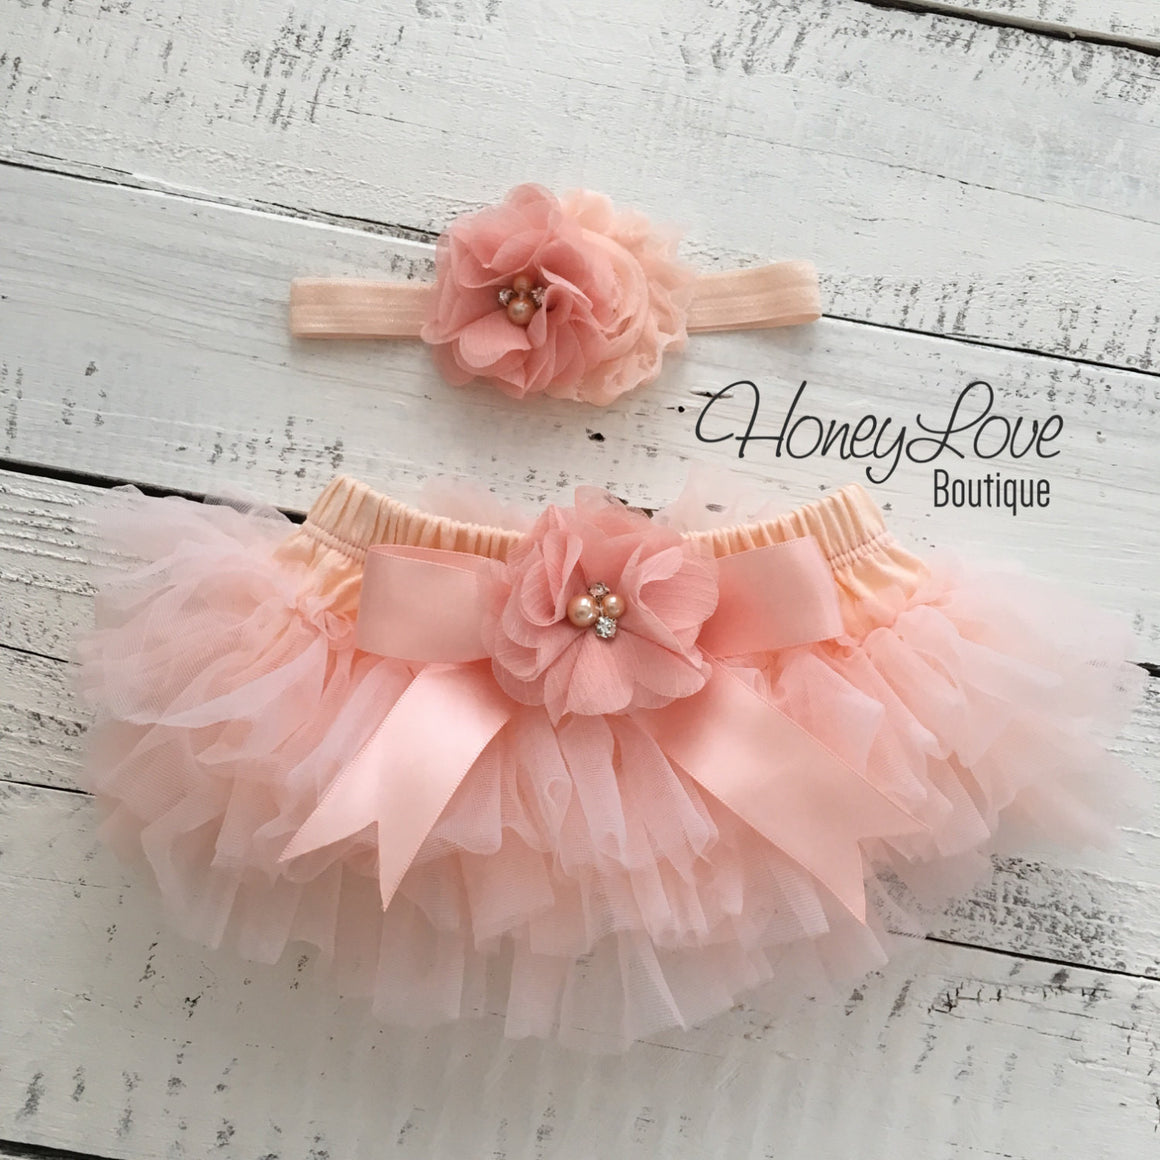 PERSONALIZED Name Outfit - Gold Glitter and Peach - embellished tutu skirt bloomers